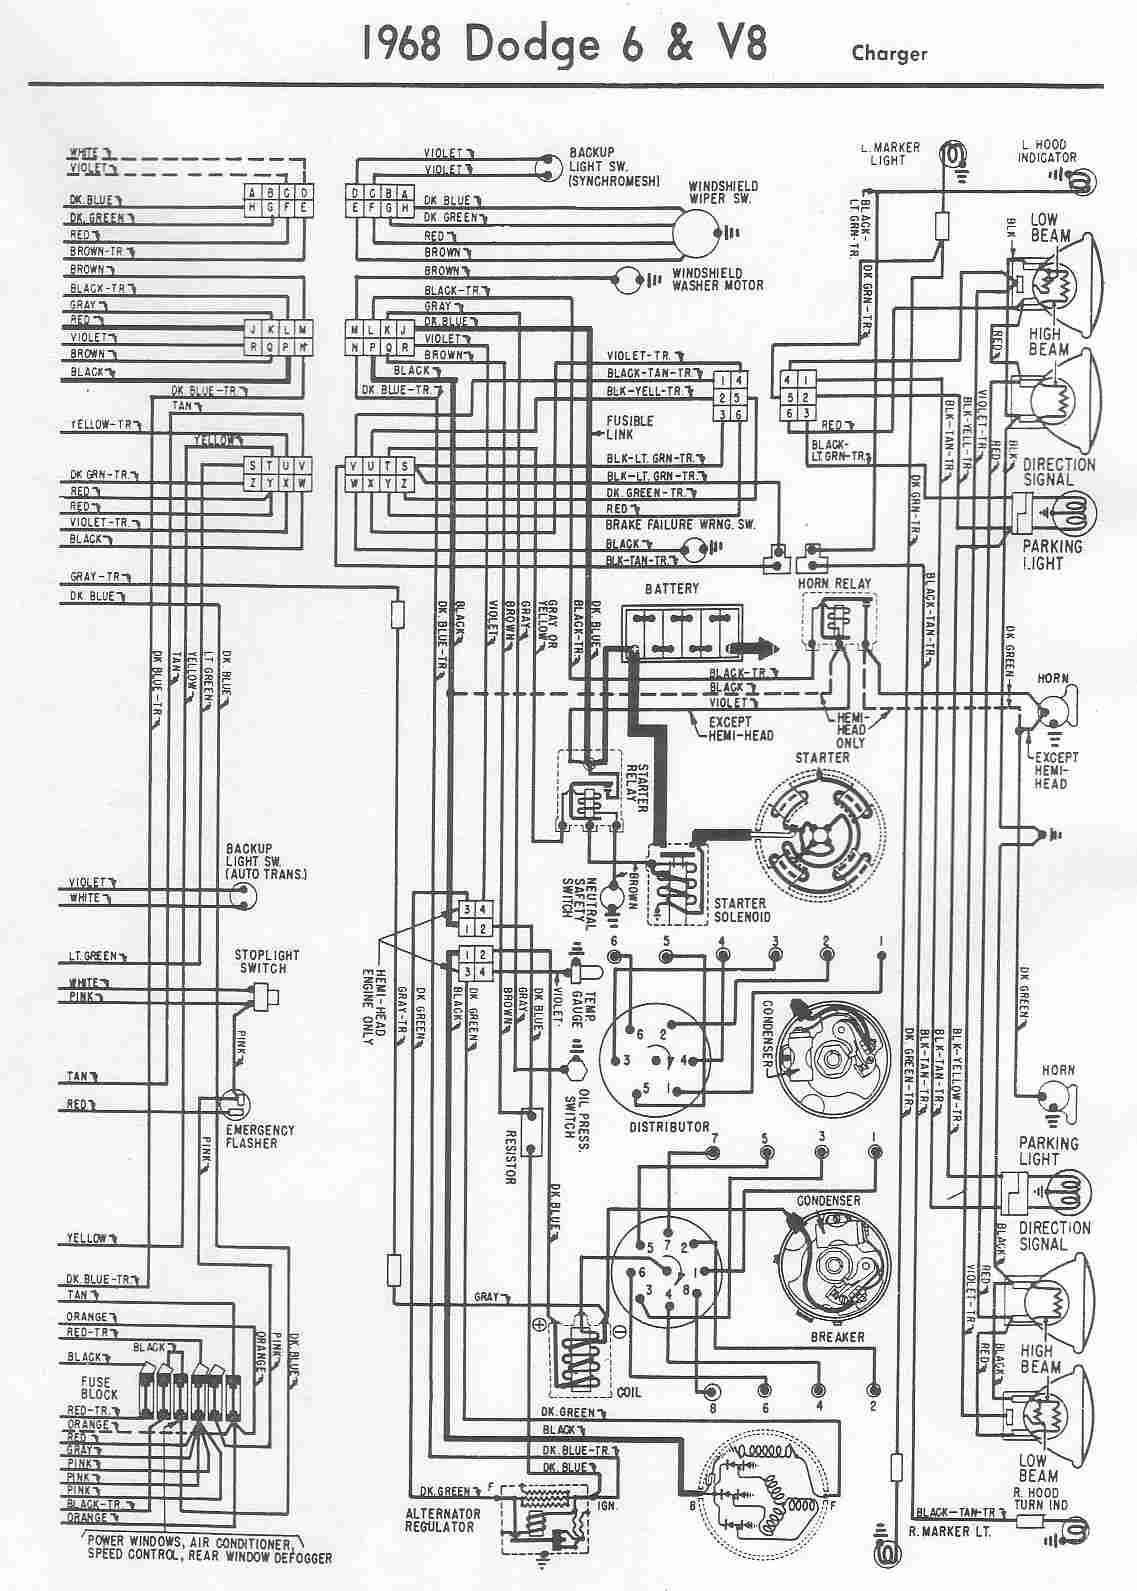 charger electrical wiring diagram of 1968 dodge 6 and v8?t=1508404771 dodge car manuals, wiring diagrams pdf & fault codes 1968 dodge dart wiring diagram at soozxer.org